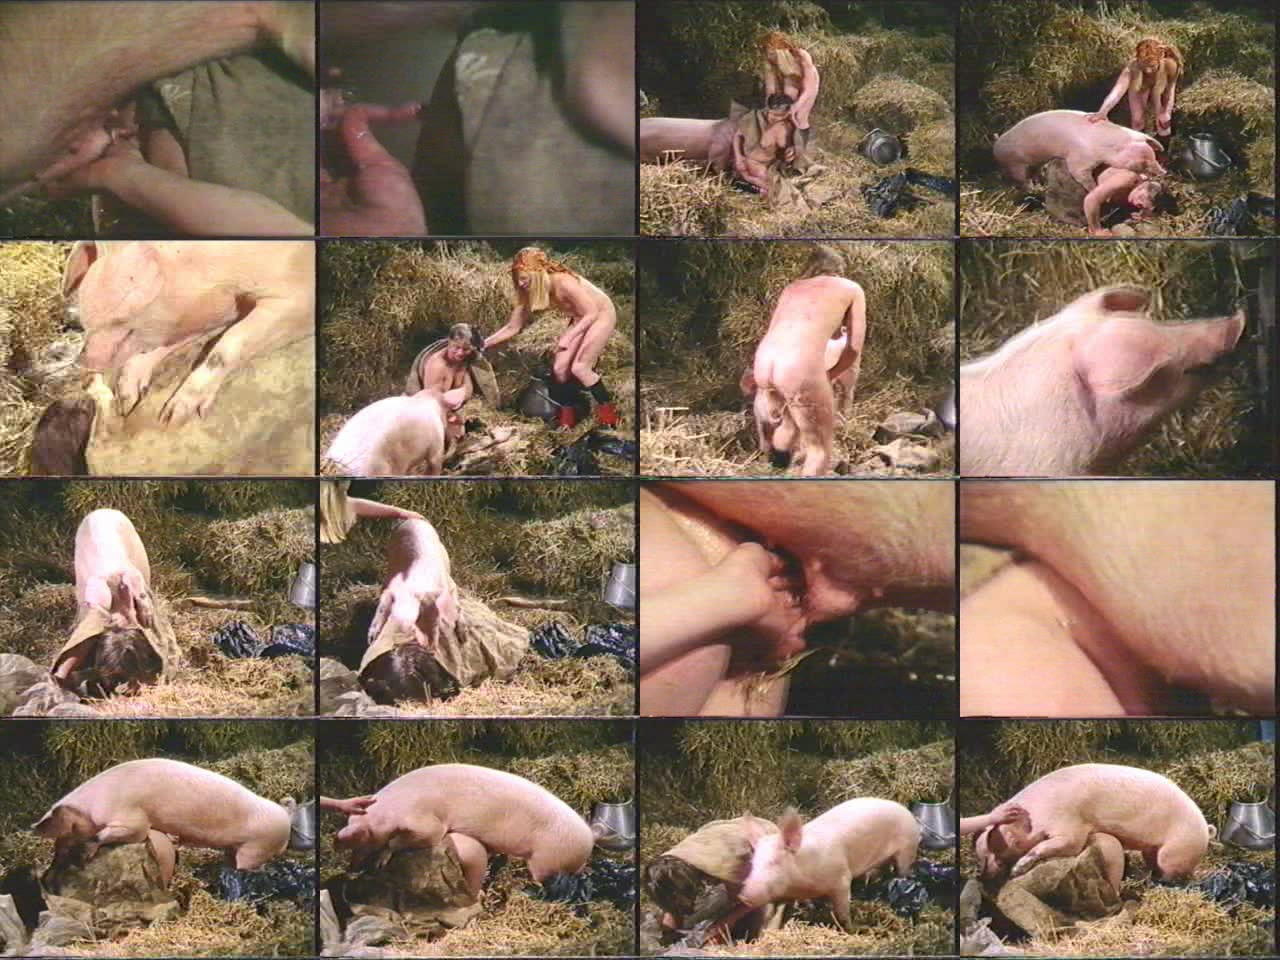 Pig girls sex video nudes photo